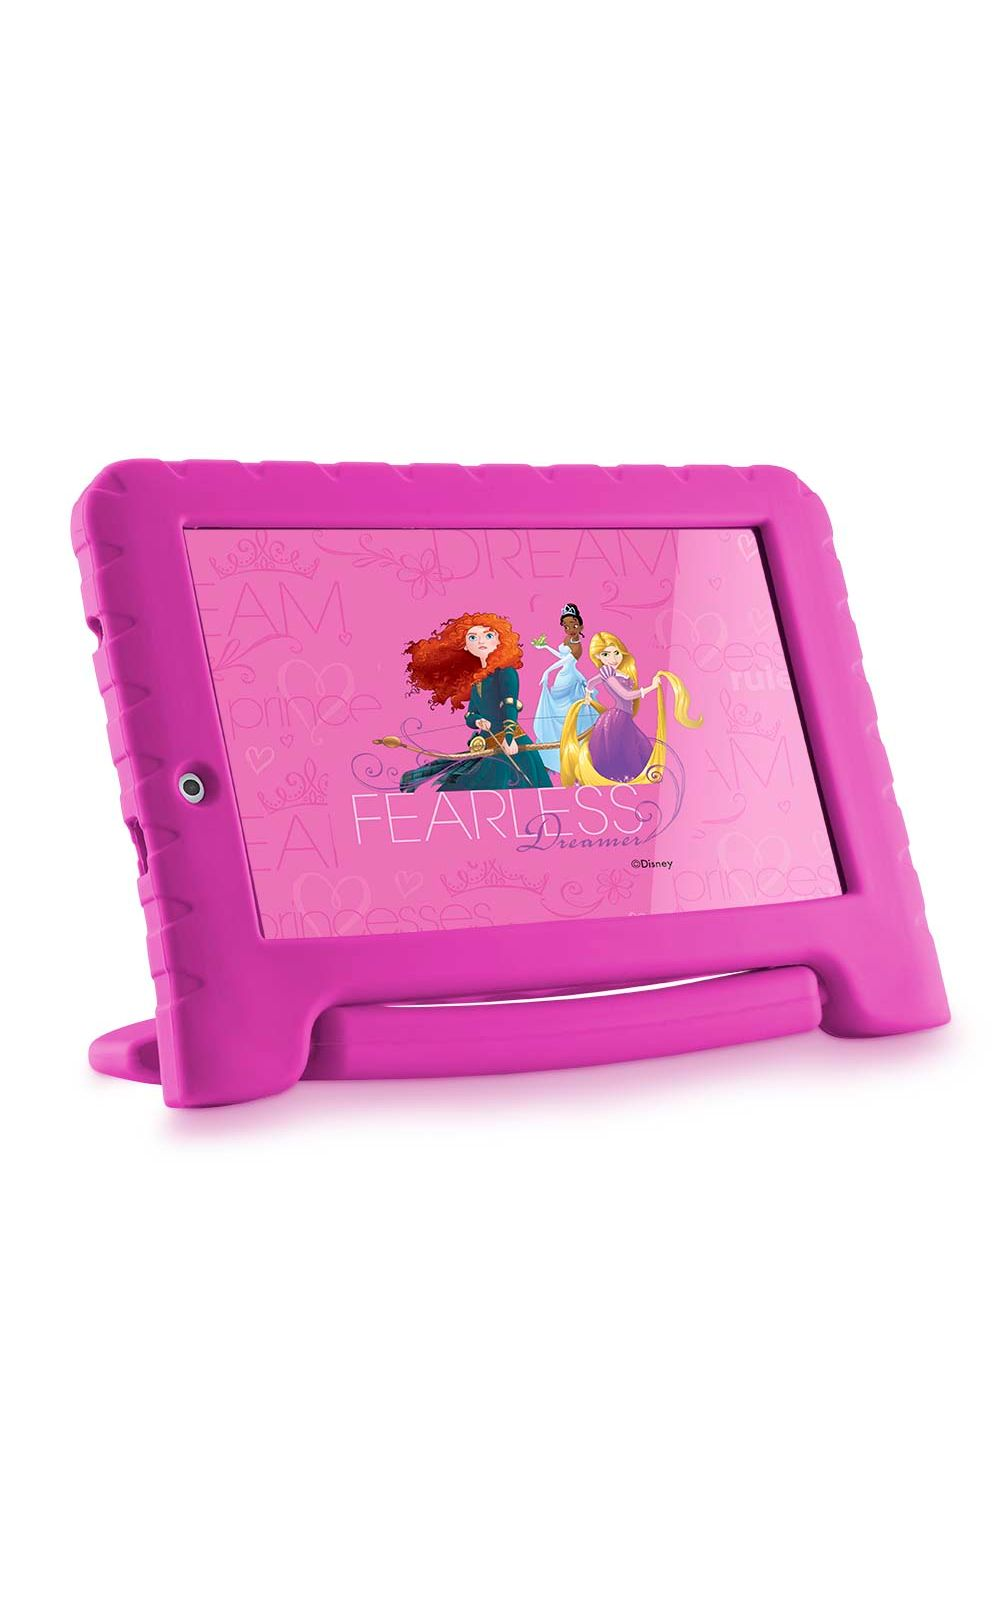 Foto 4 - Tablet Disney Princesas Plus Wifi 8Gb Dual Câmera Android 7 Rosa Multilaser - NB281